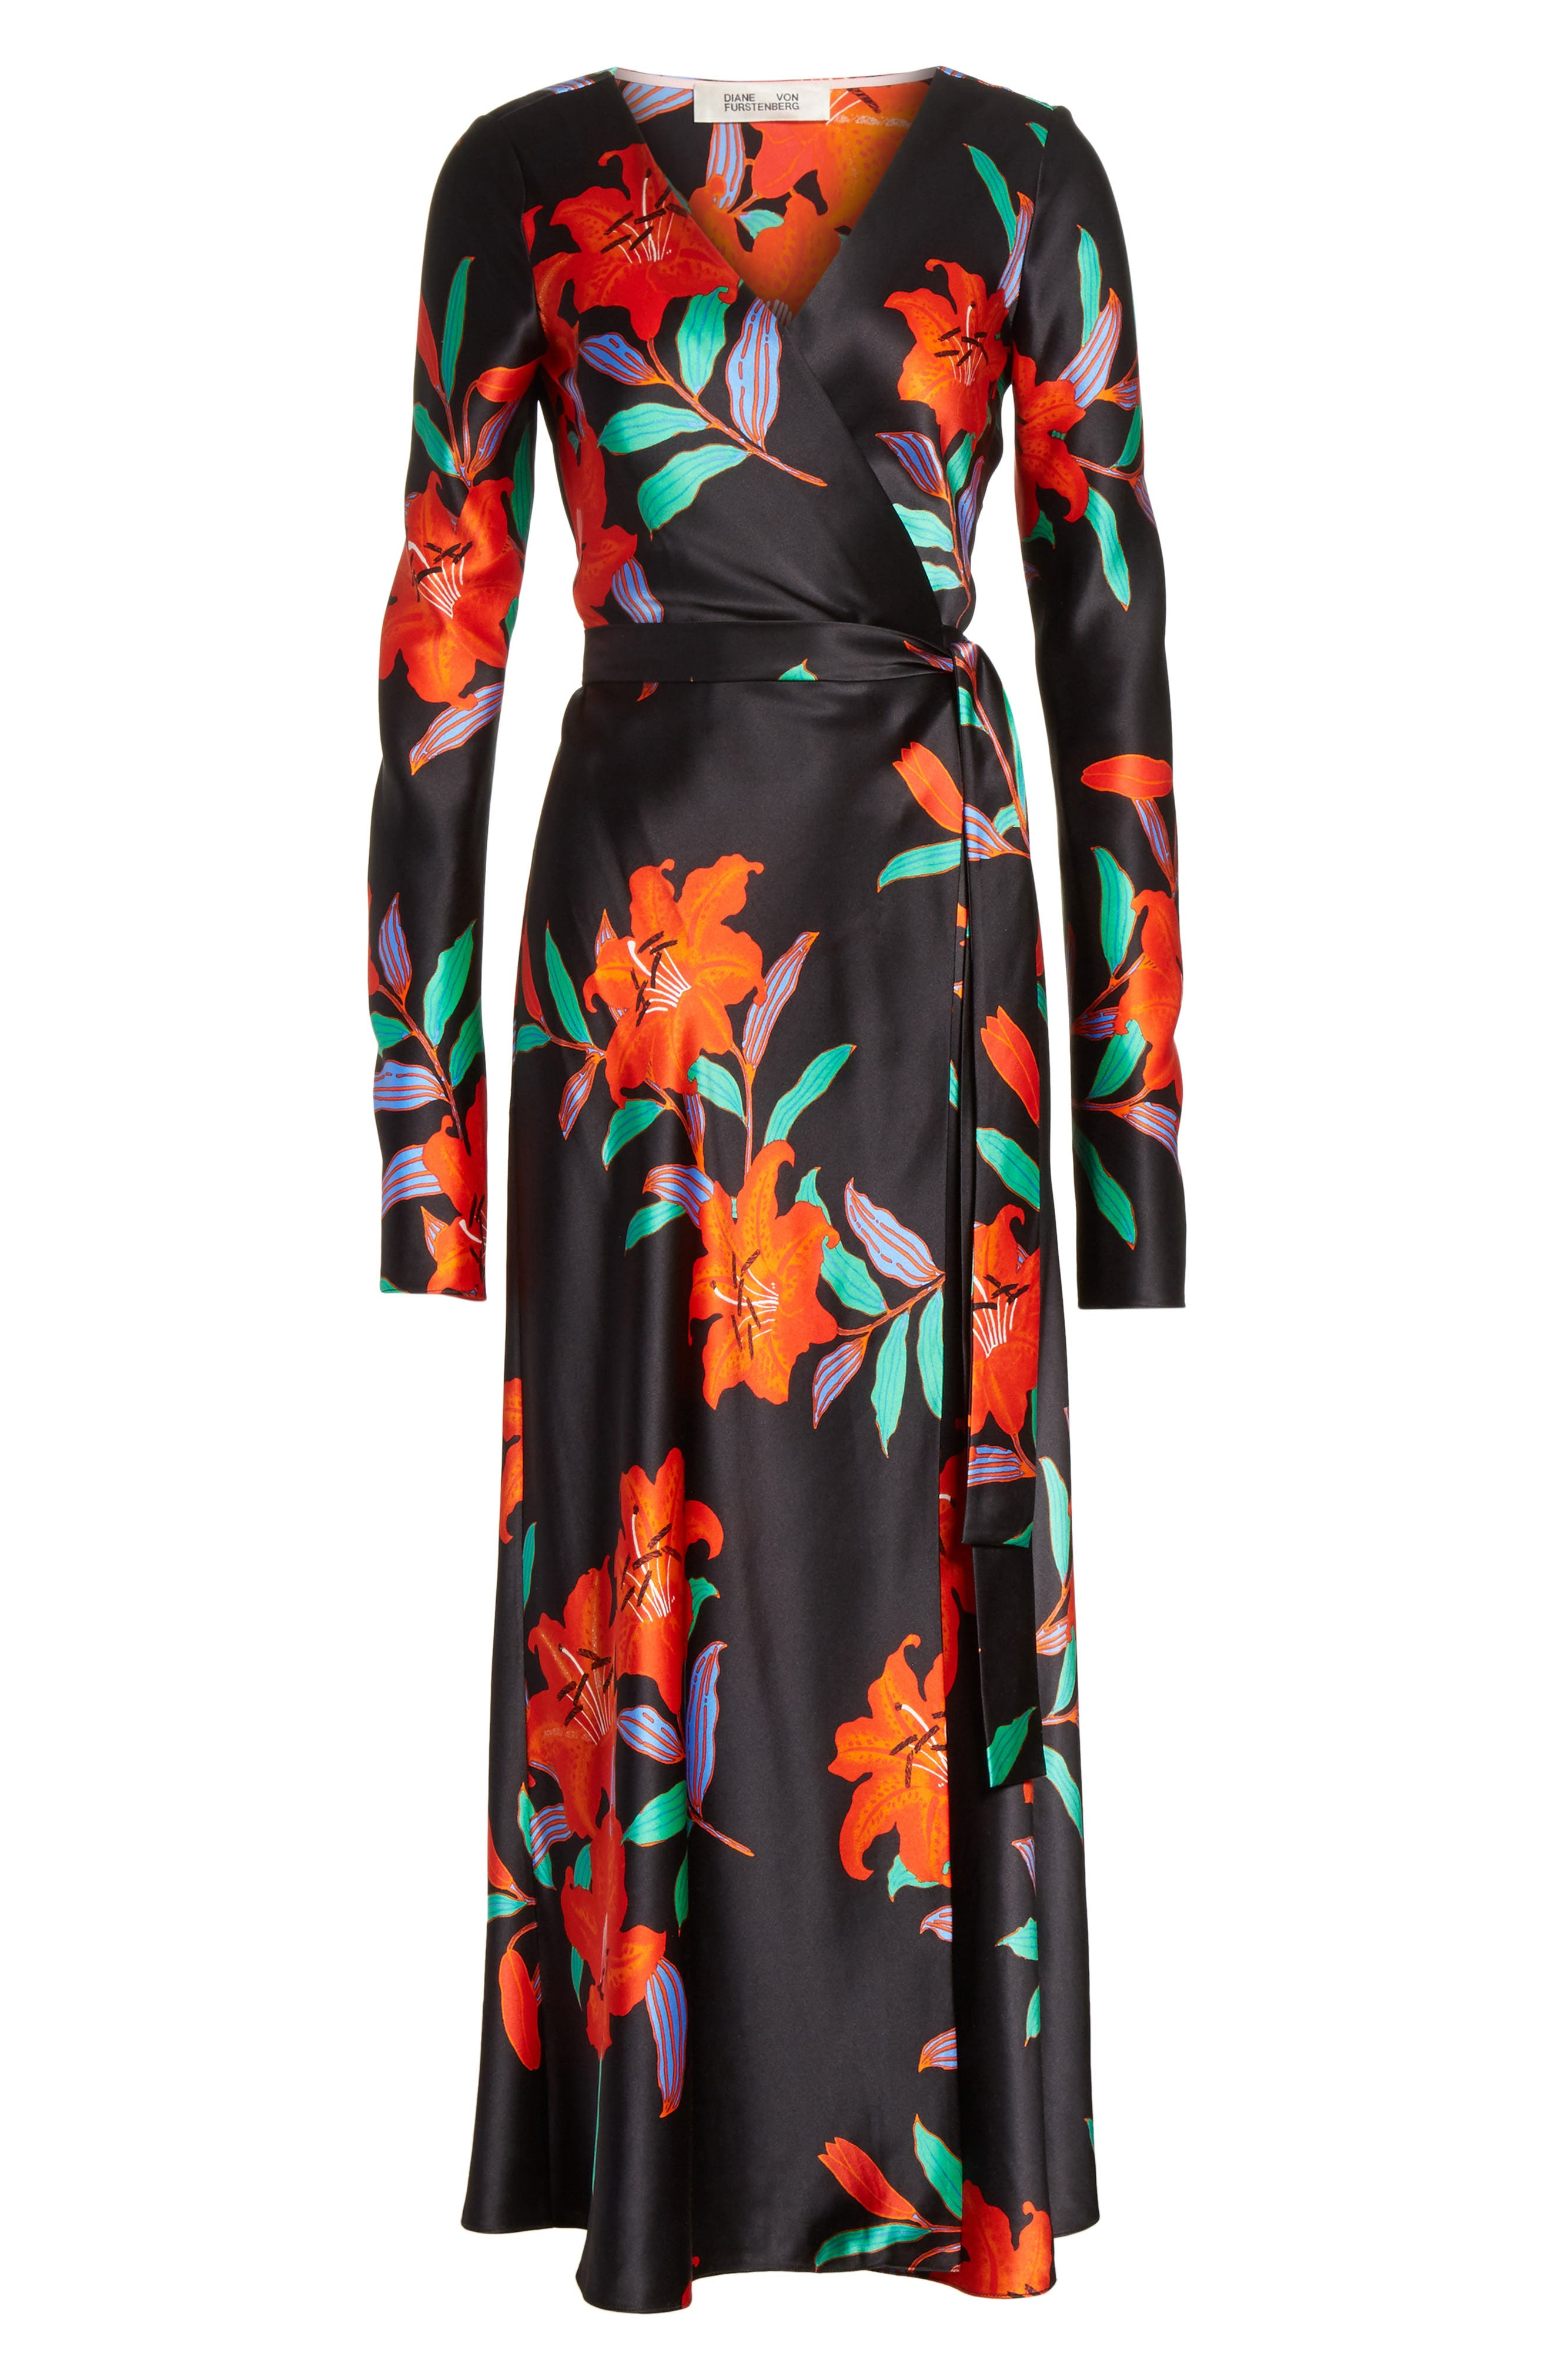 Diane von Furstenberg Floral Print Wrap Silk Dress,                             Alternate thumbnail 6, color,                             001